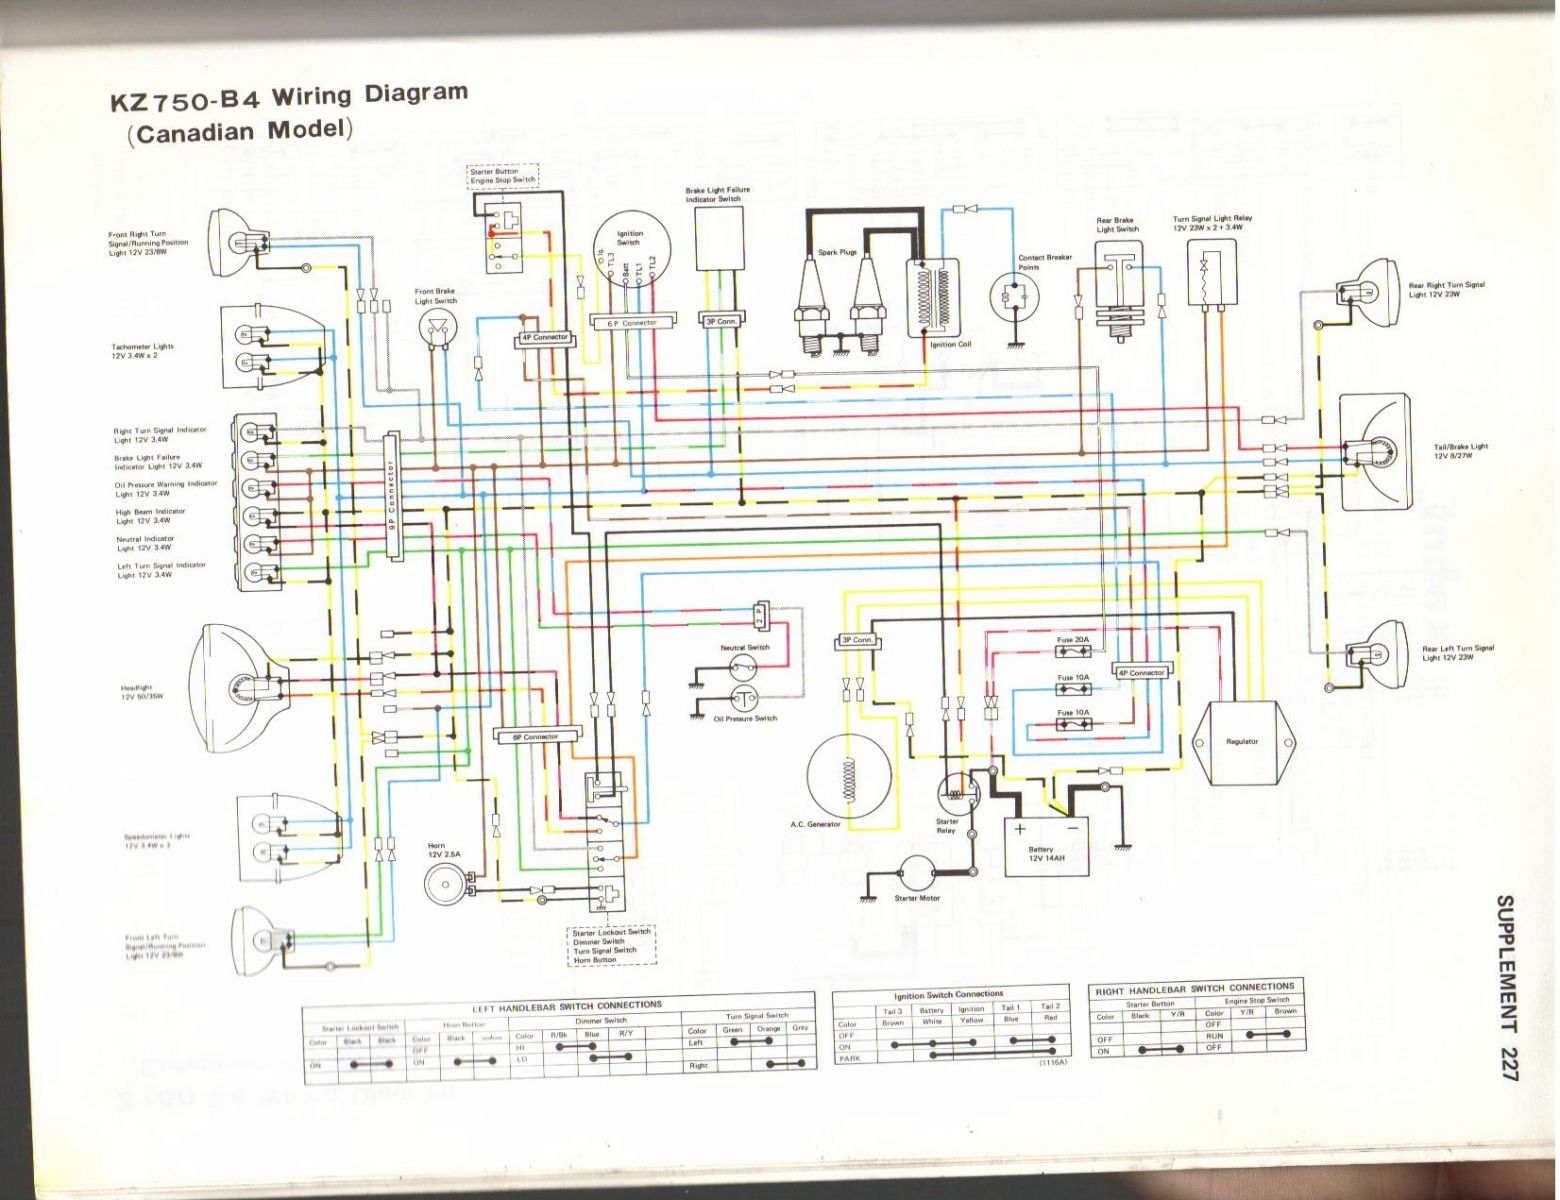 kz750b4wiringdiagram 1976 kz 750 need help! wiring harness kzrider forum kzrider kz440 wiring harness at honlapkeszites.co